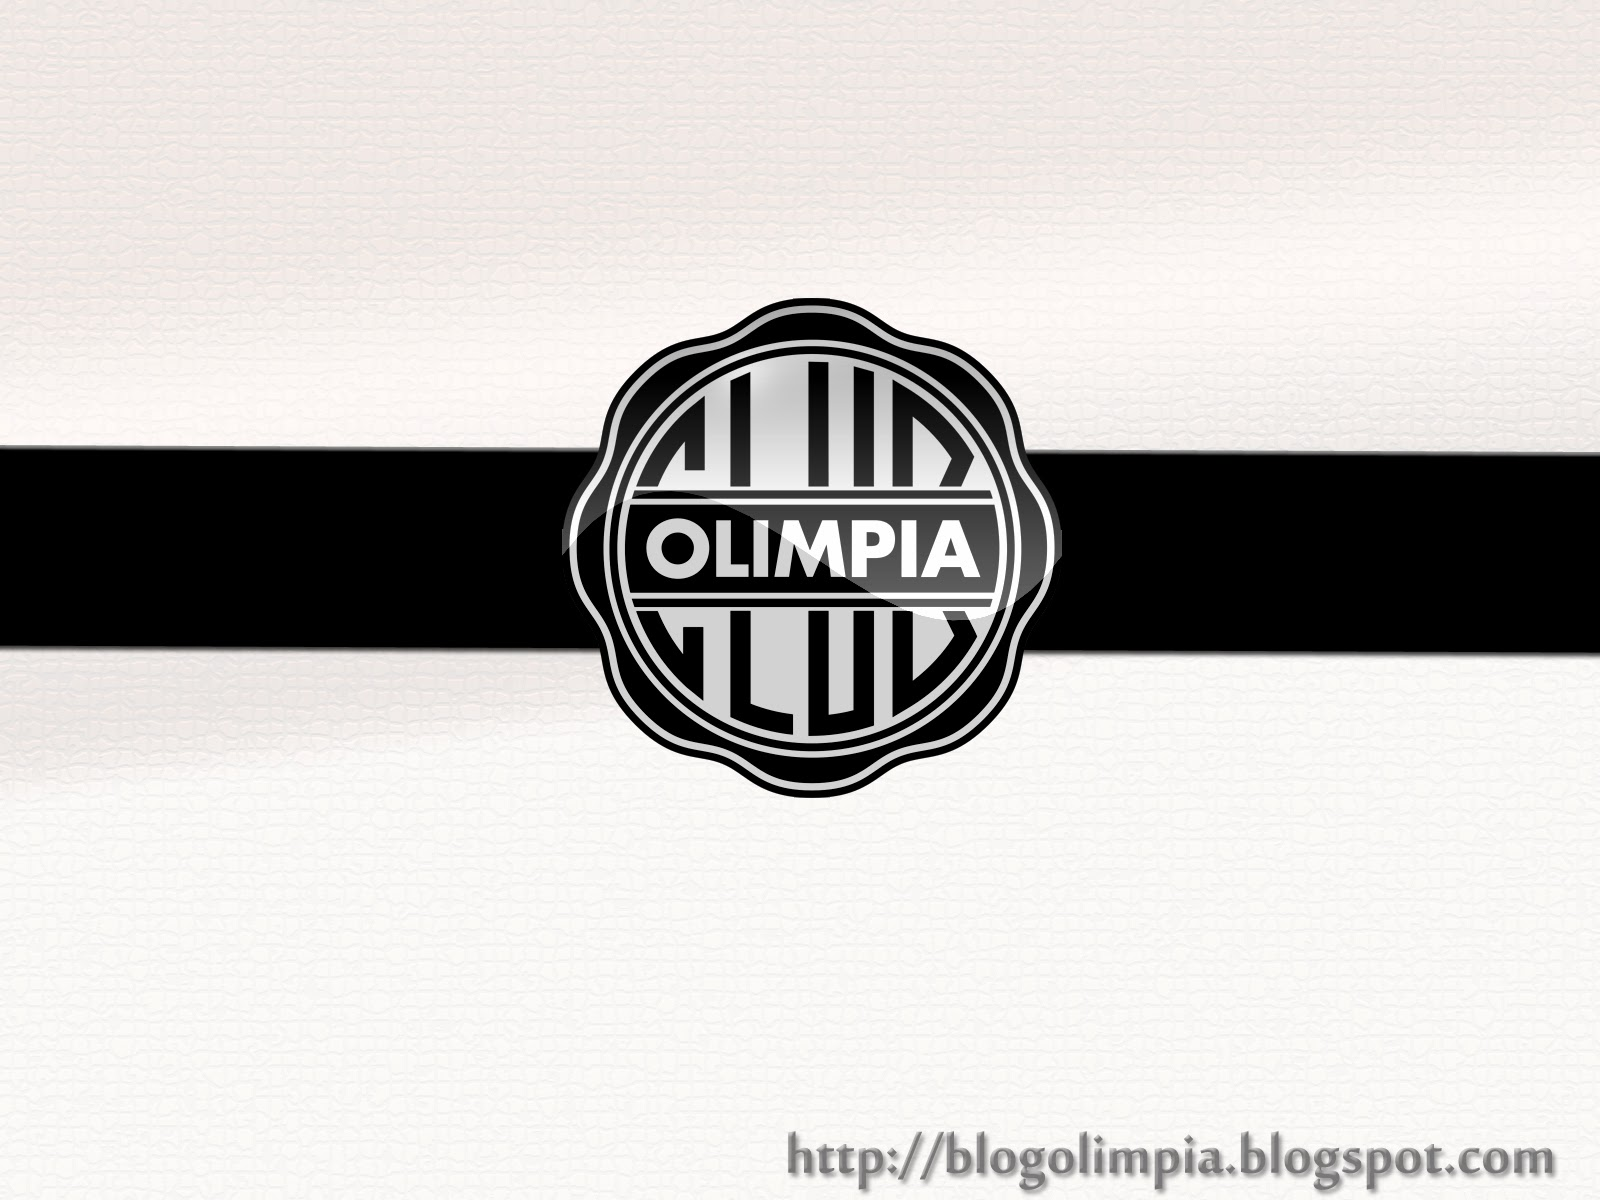 Blogolimpia Bo Mi Club Olimpia Wallpapers Wp Olimpia0006 0009